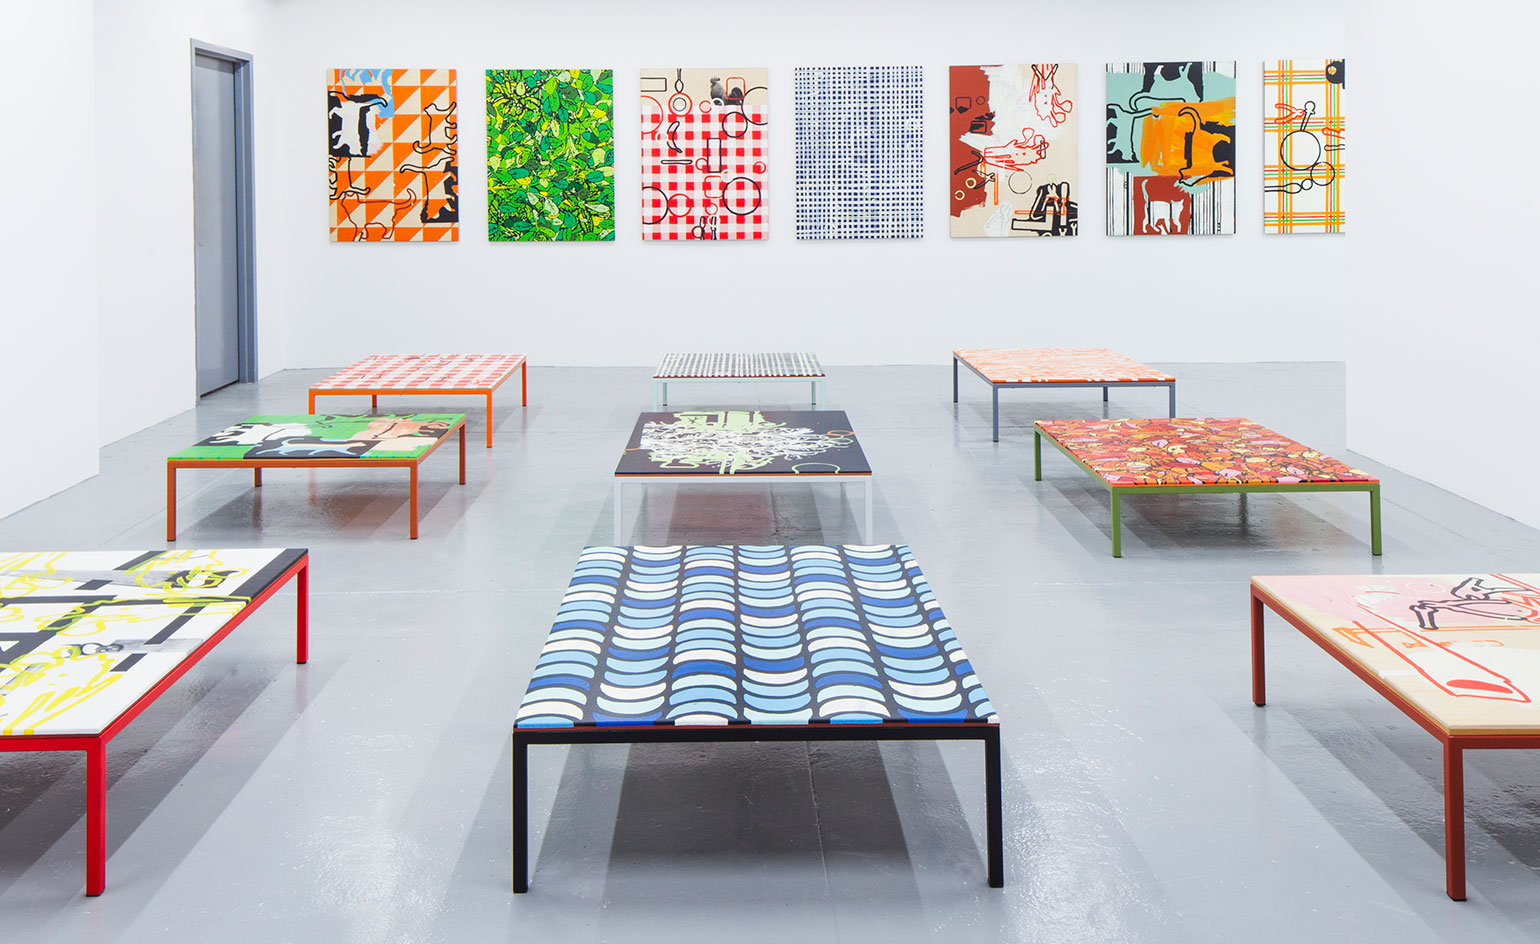 Richard woods presents 39 work tables 39 at friedman benda for Table graphic design